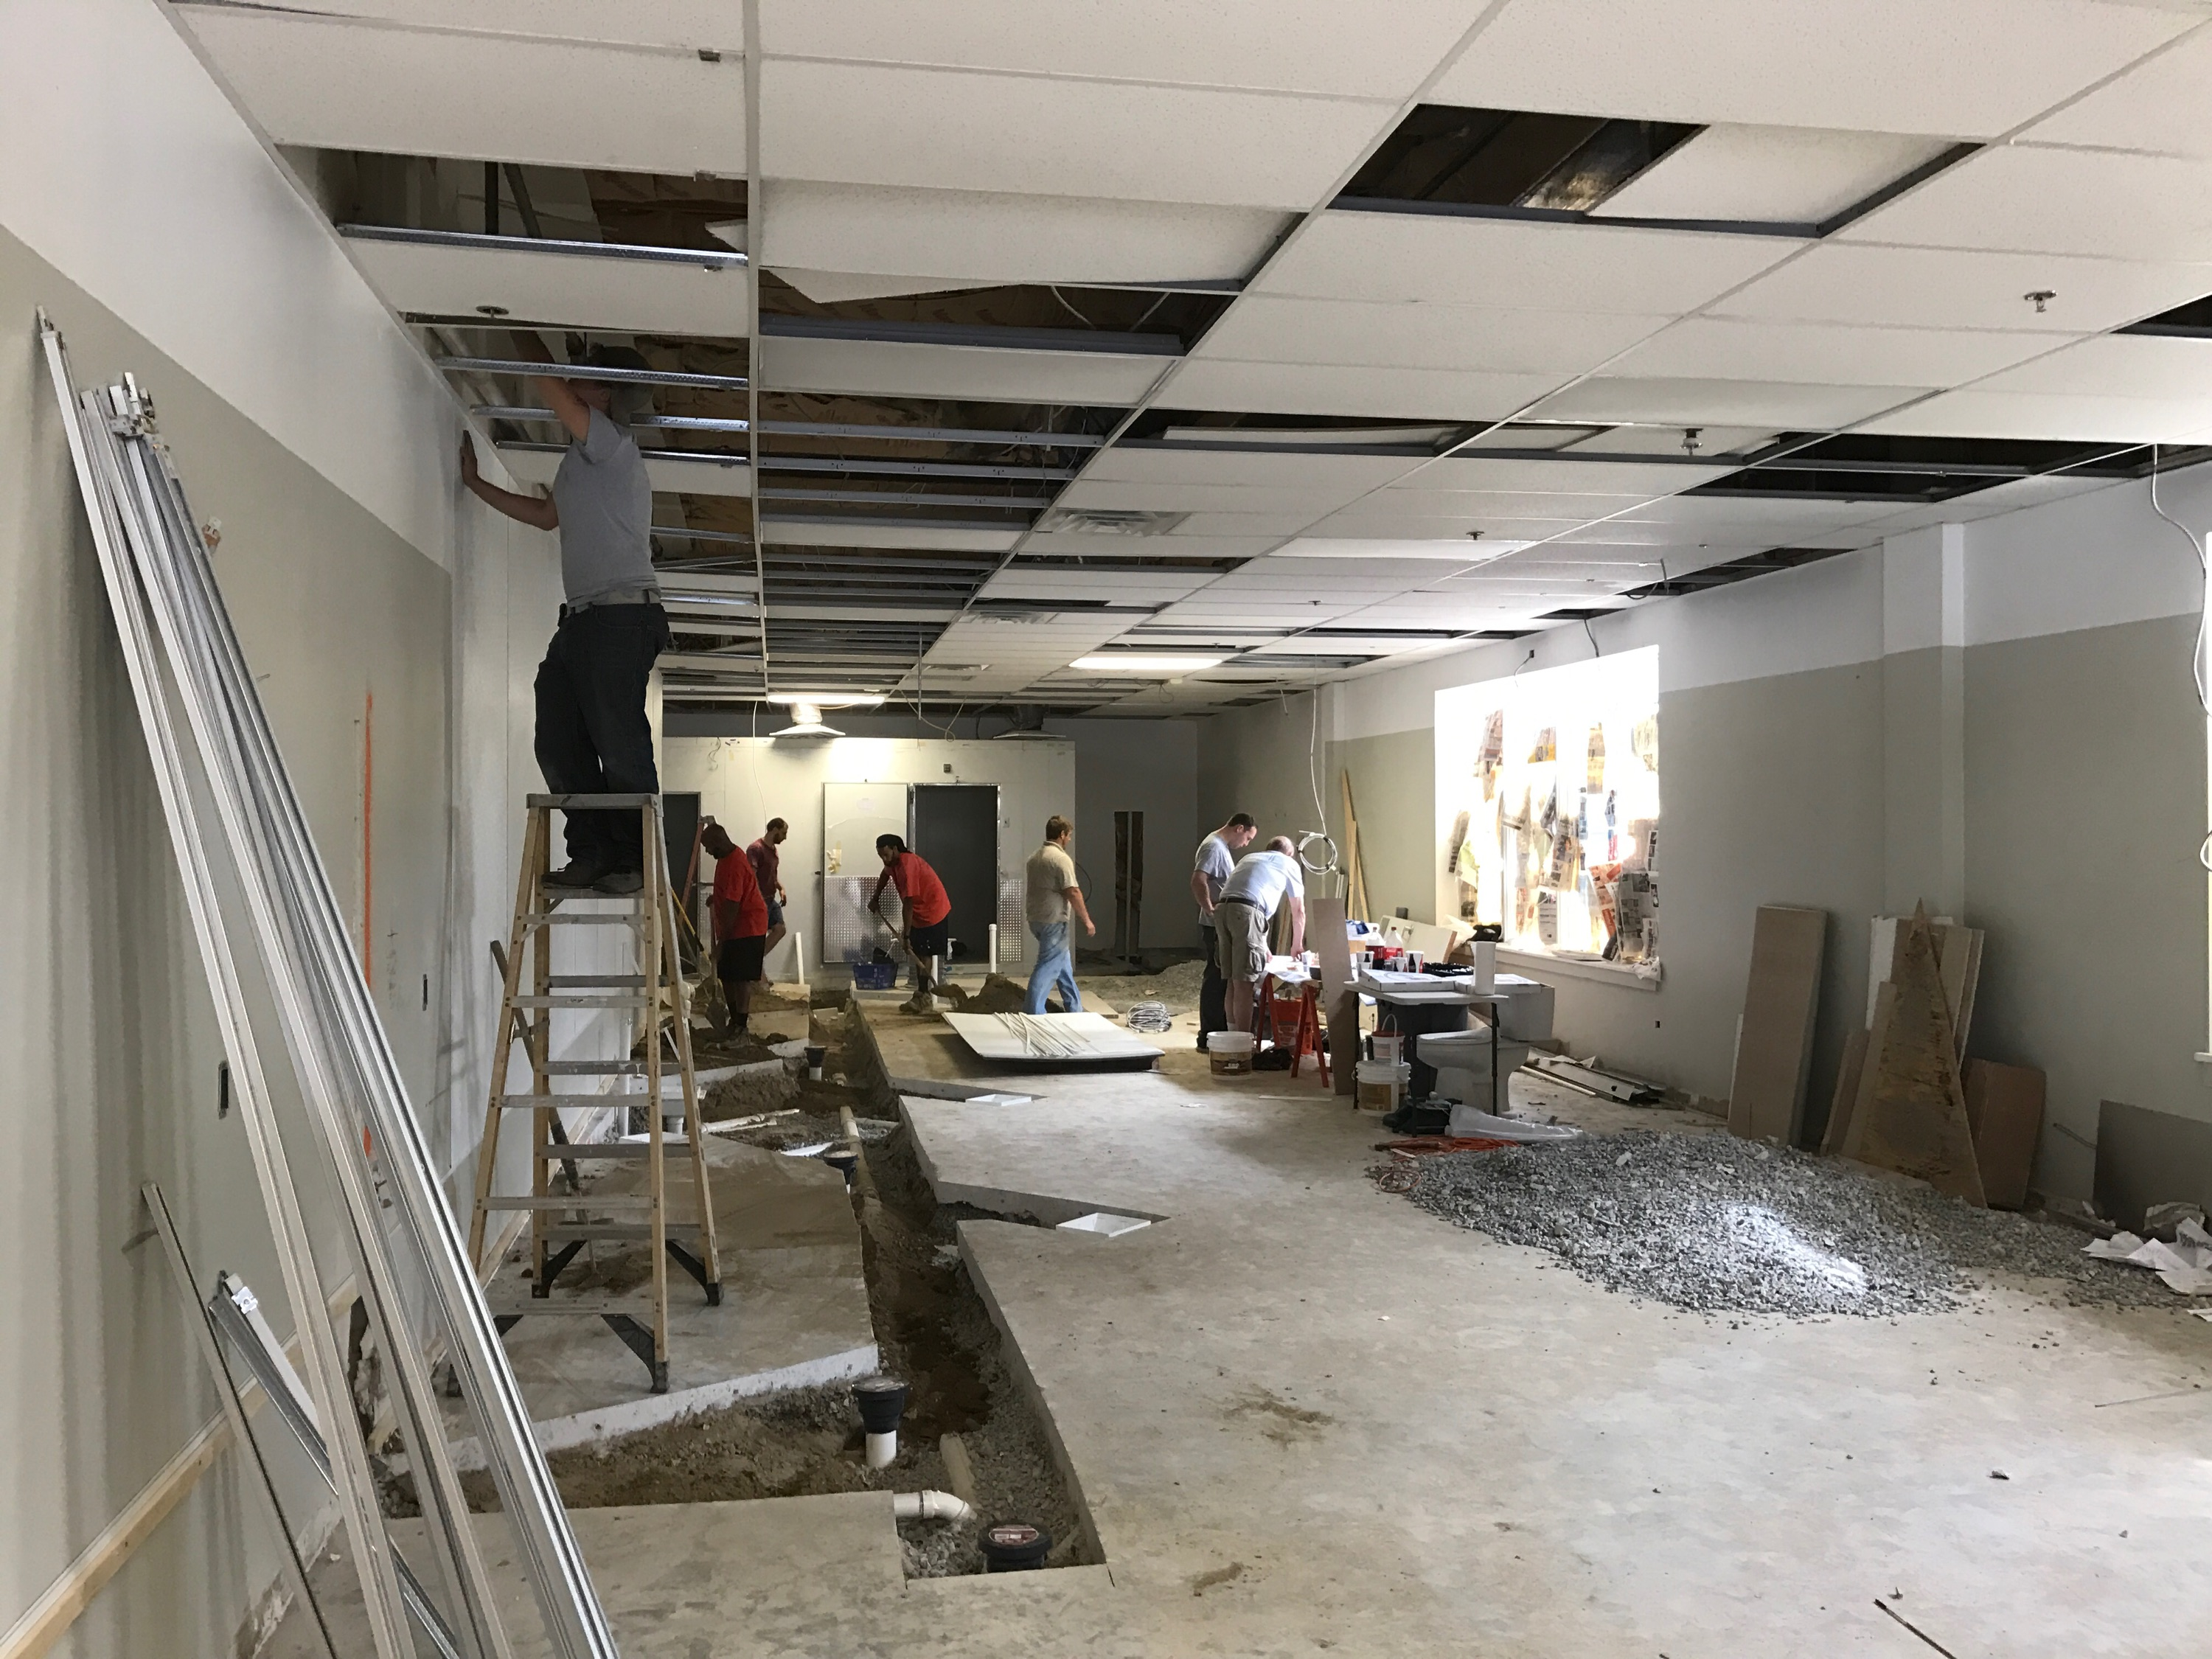 Electrical Remodeling and Renovation Services for Gadaleto's Seafood Market in West Chester, PA